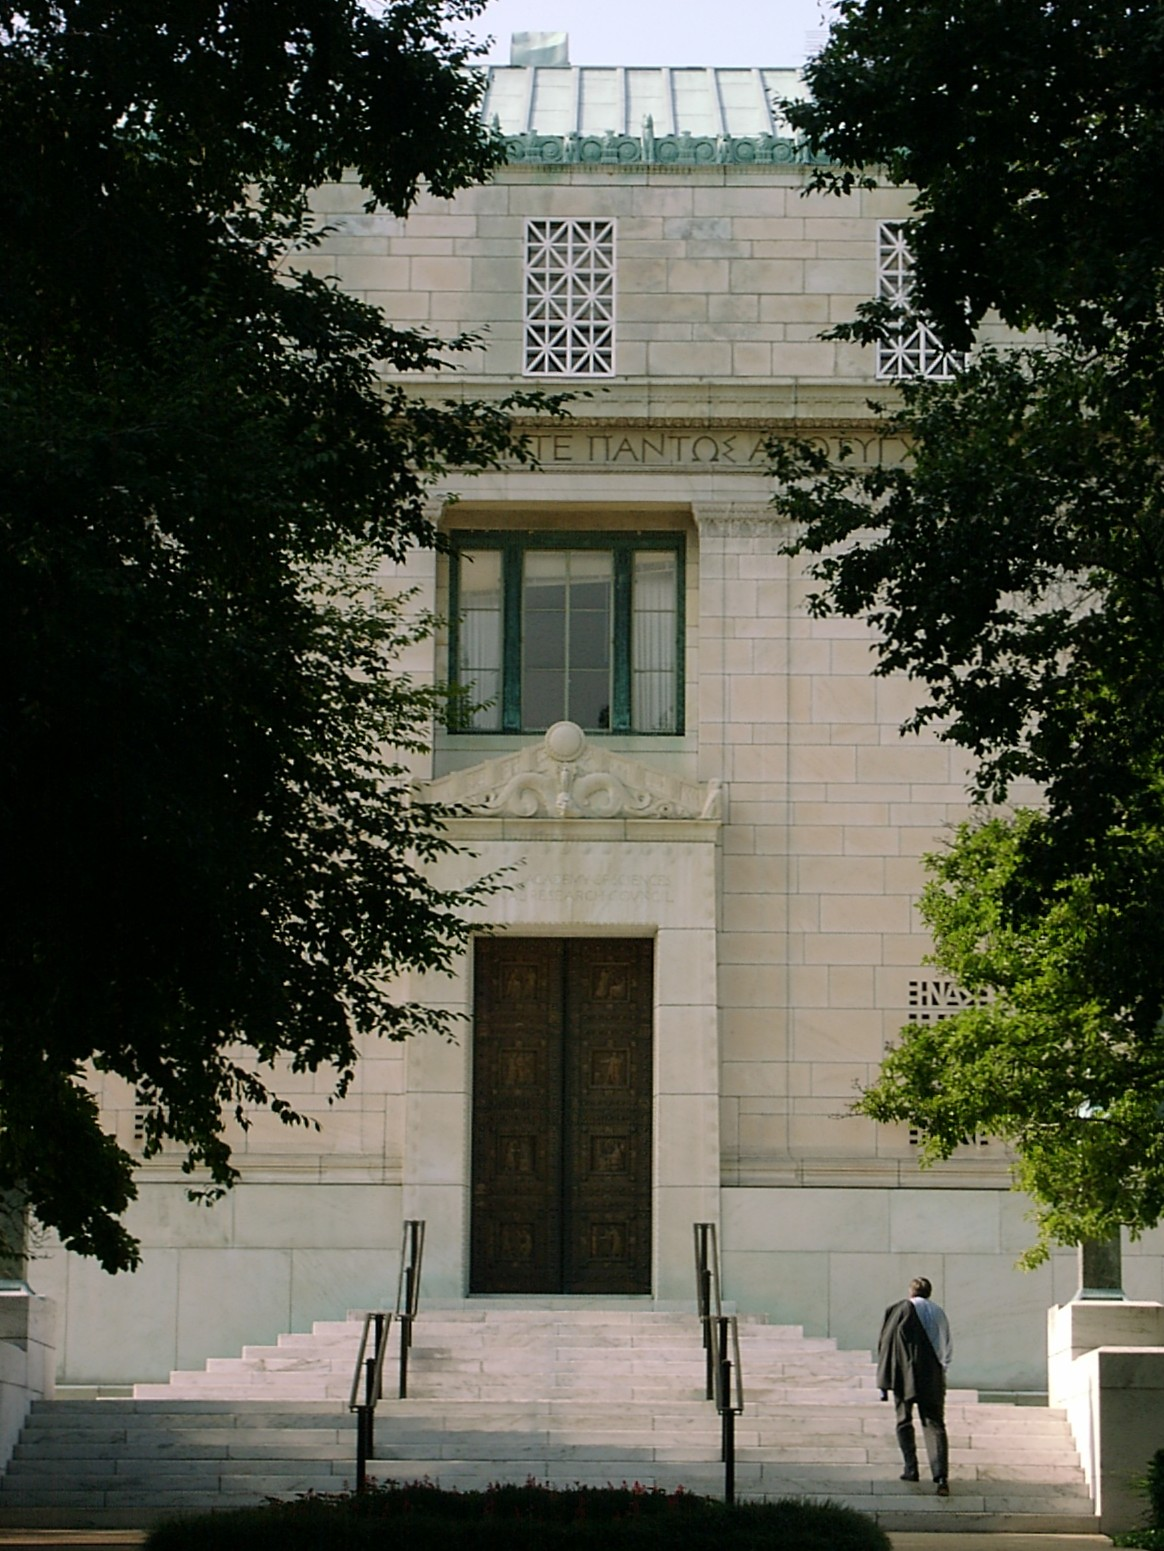 A view of the National Academy of Sciences building.